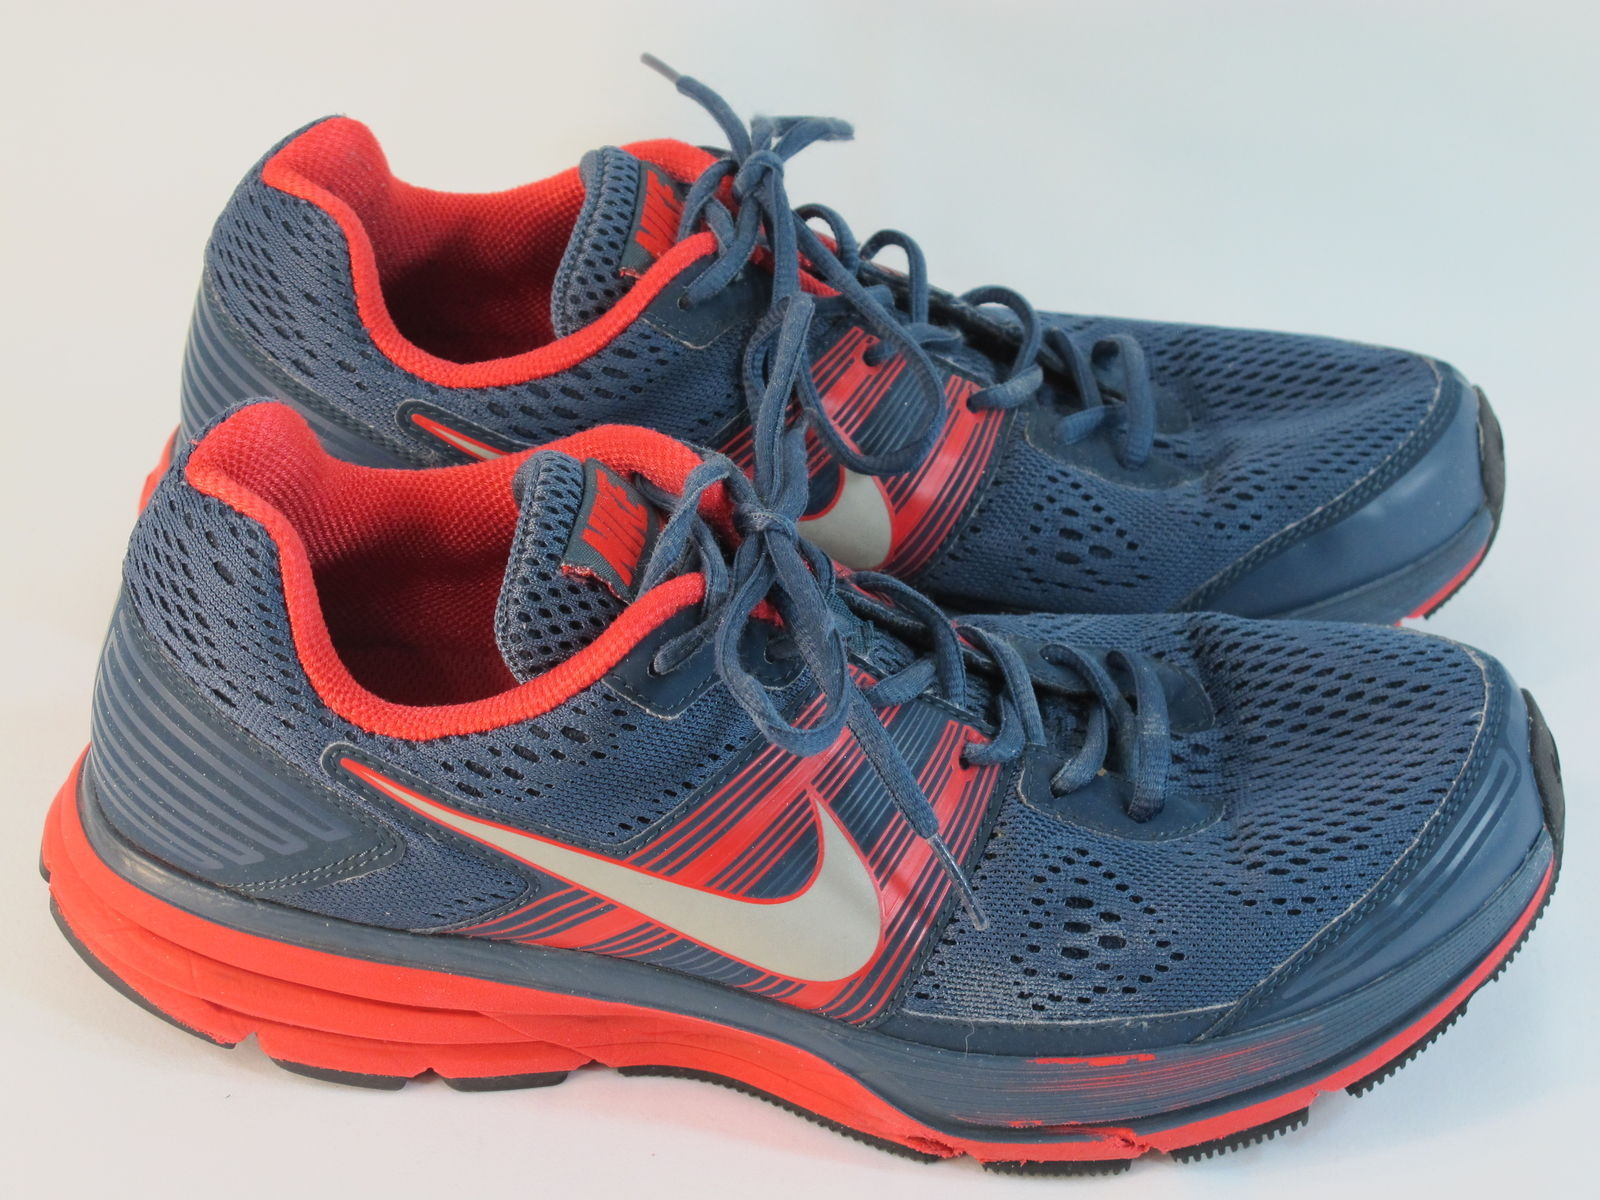 faa08a36df29 Nike Air Zoom Pegasus+ 29 Running Shoes and 49 similar items. S l1600